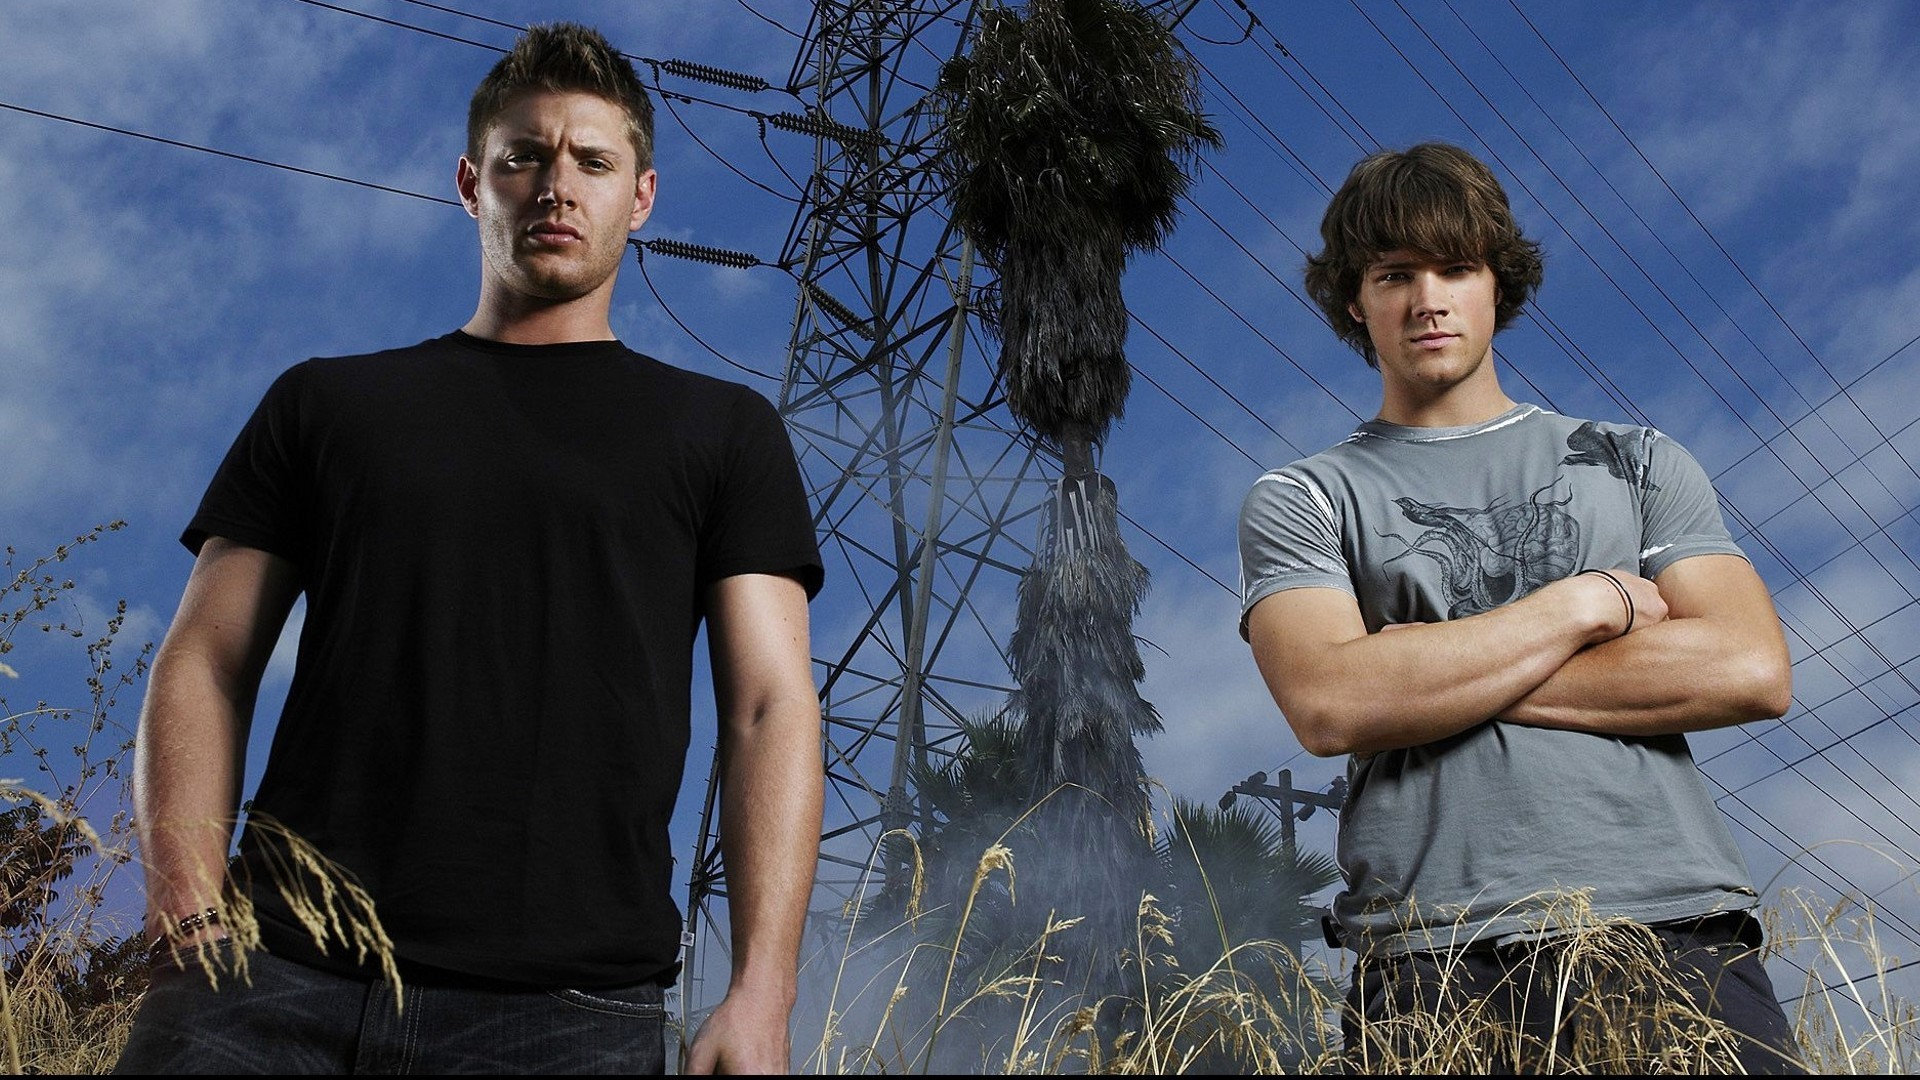 Jared-Padalecki-And-Jensen-Ackles-Supernatural-wallpaper-wp3607538